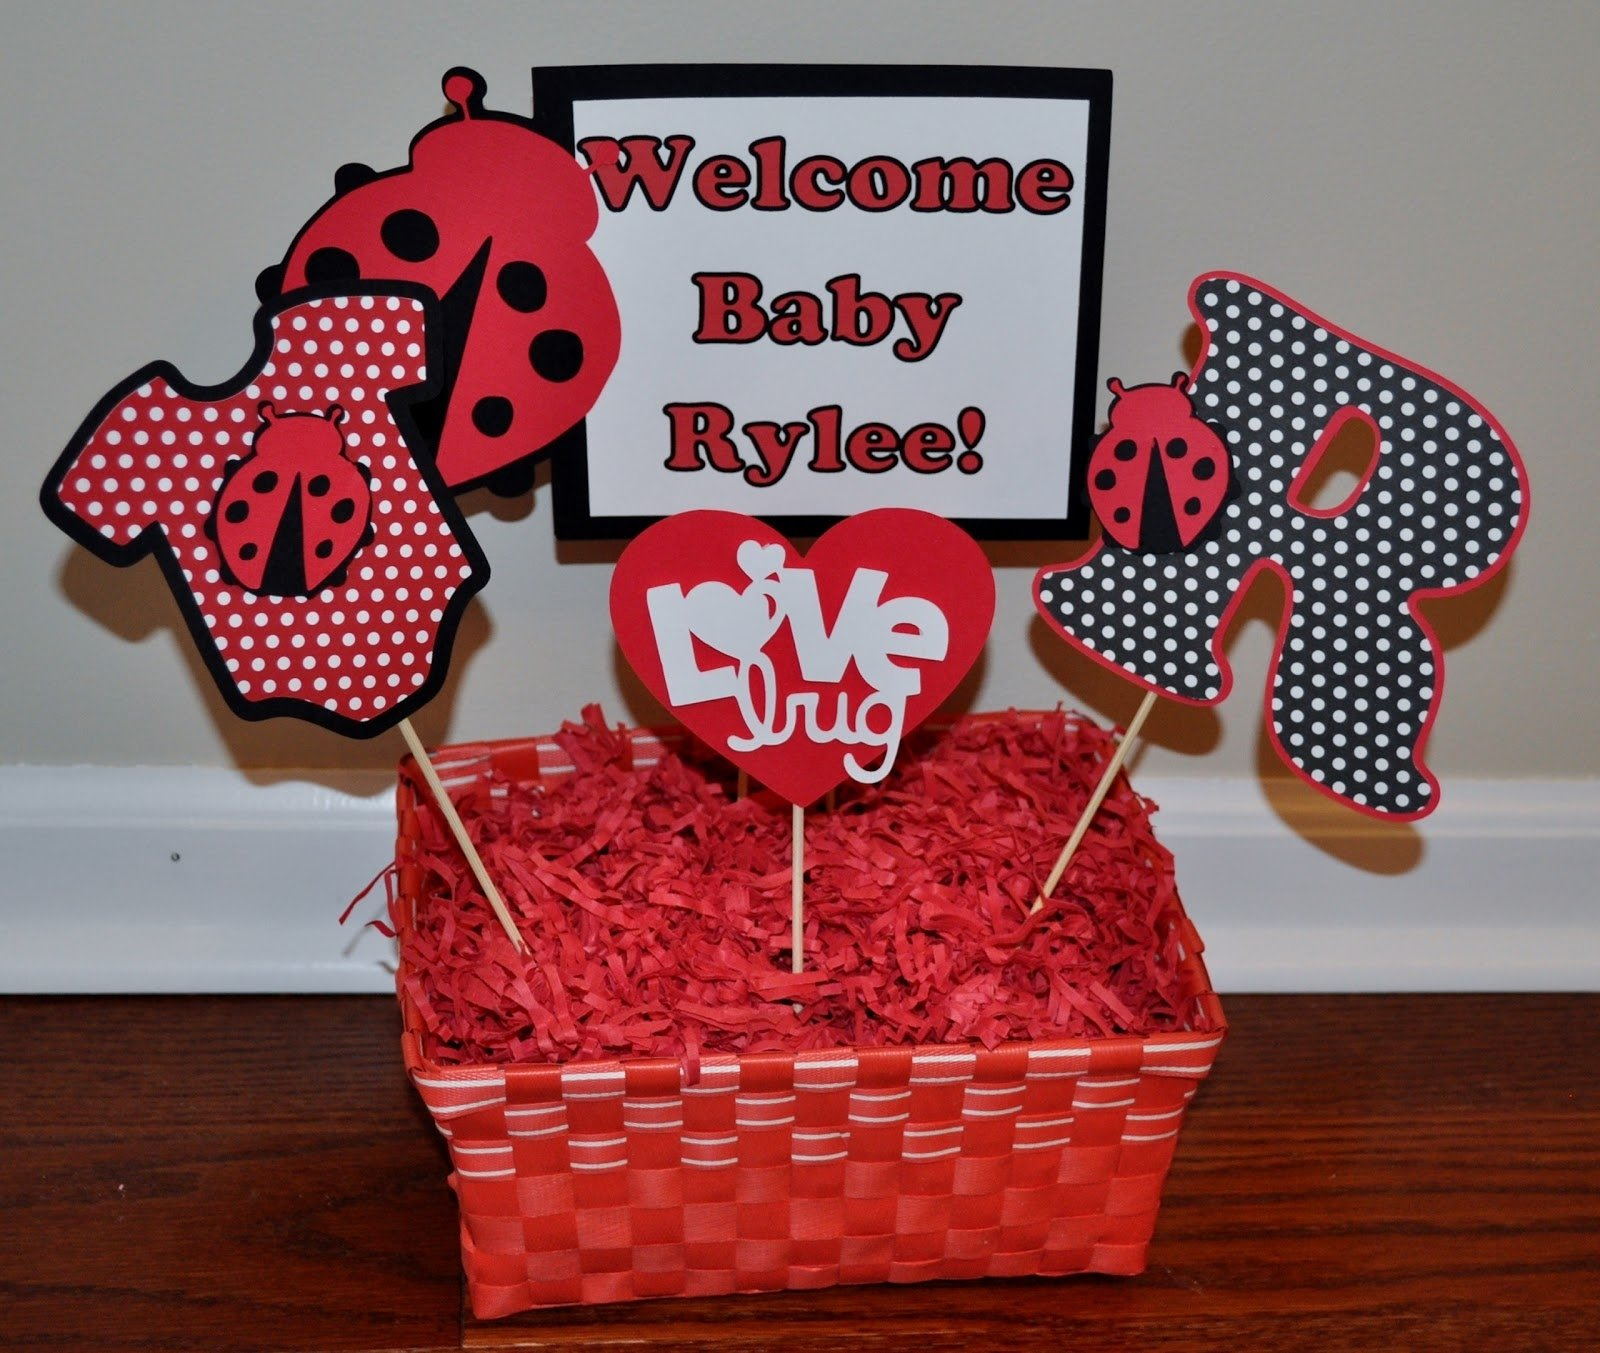 10 Attractive Lady Bug Baby Shower Ideas ladybug baby shower ideas craft the creatively and impressively to